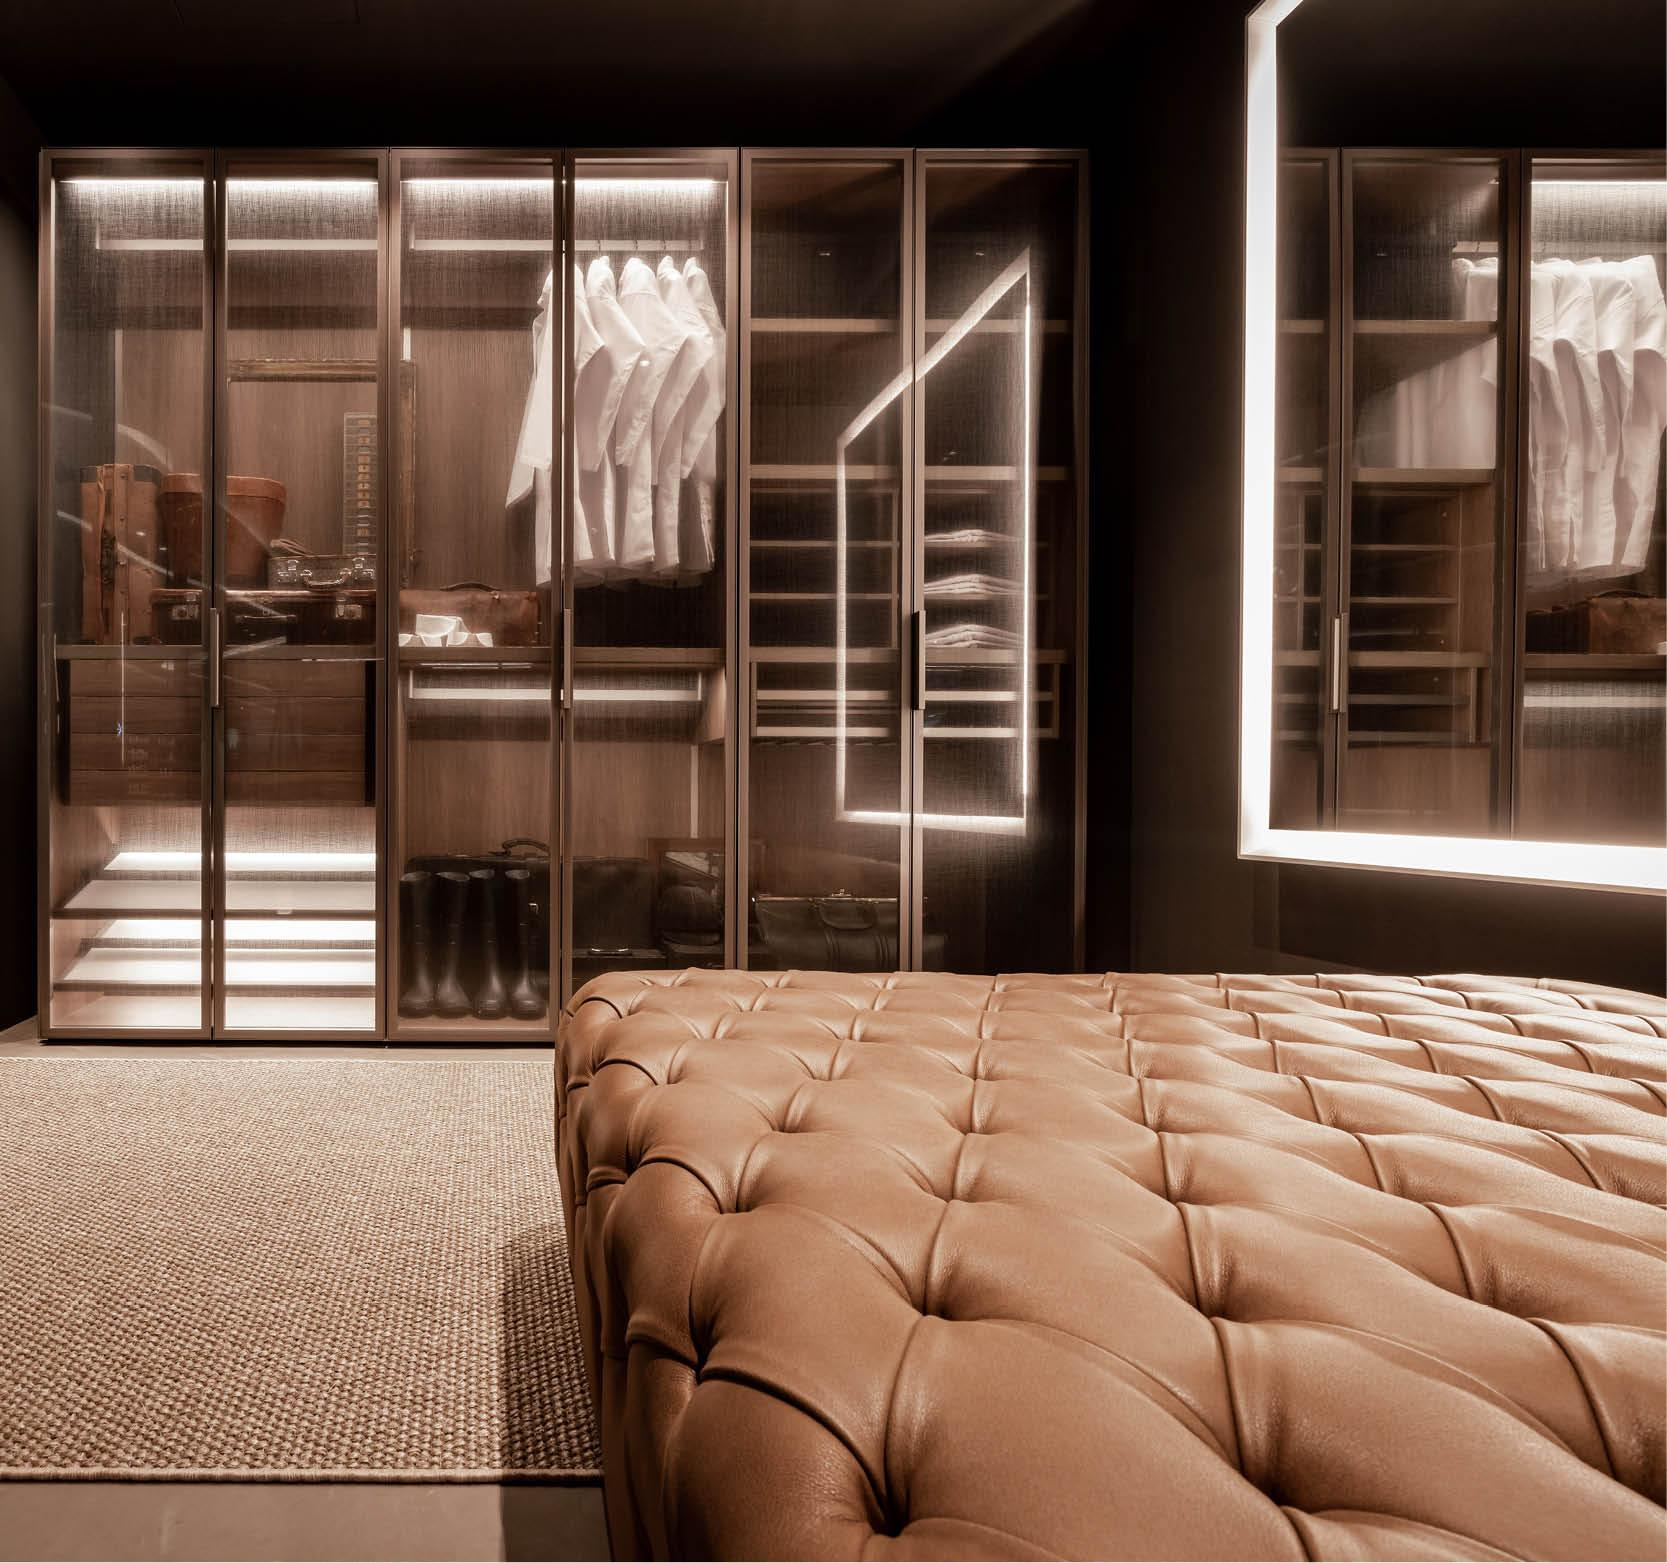 How to Create a Timeless Home, According to Boffi| De Padova's CEO